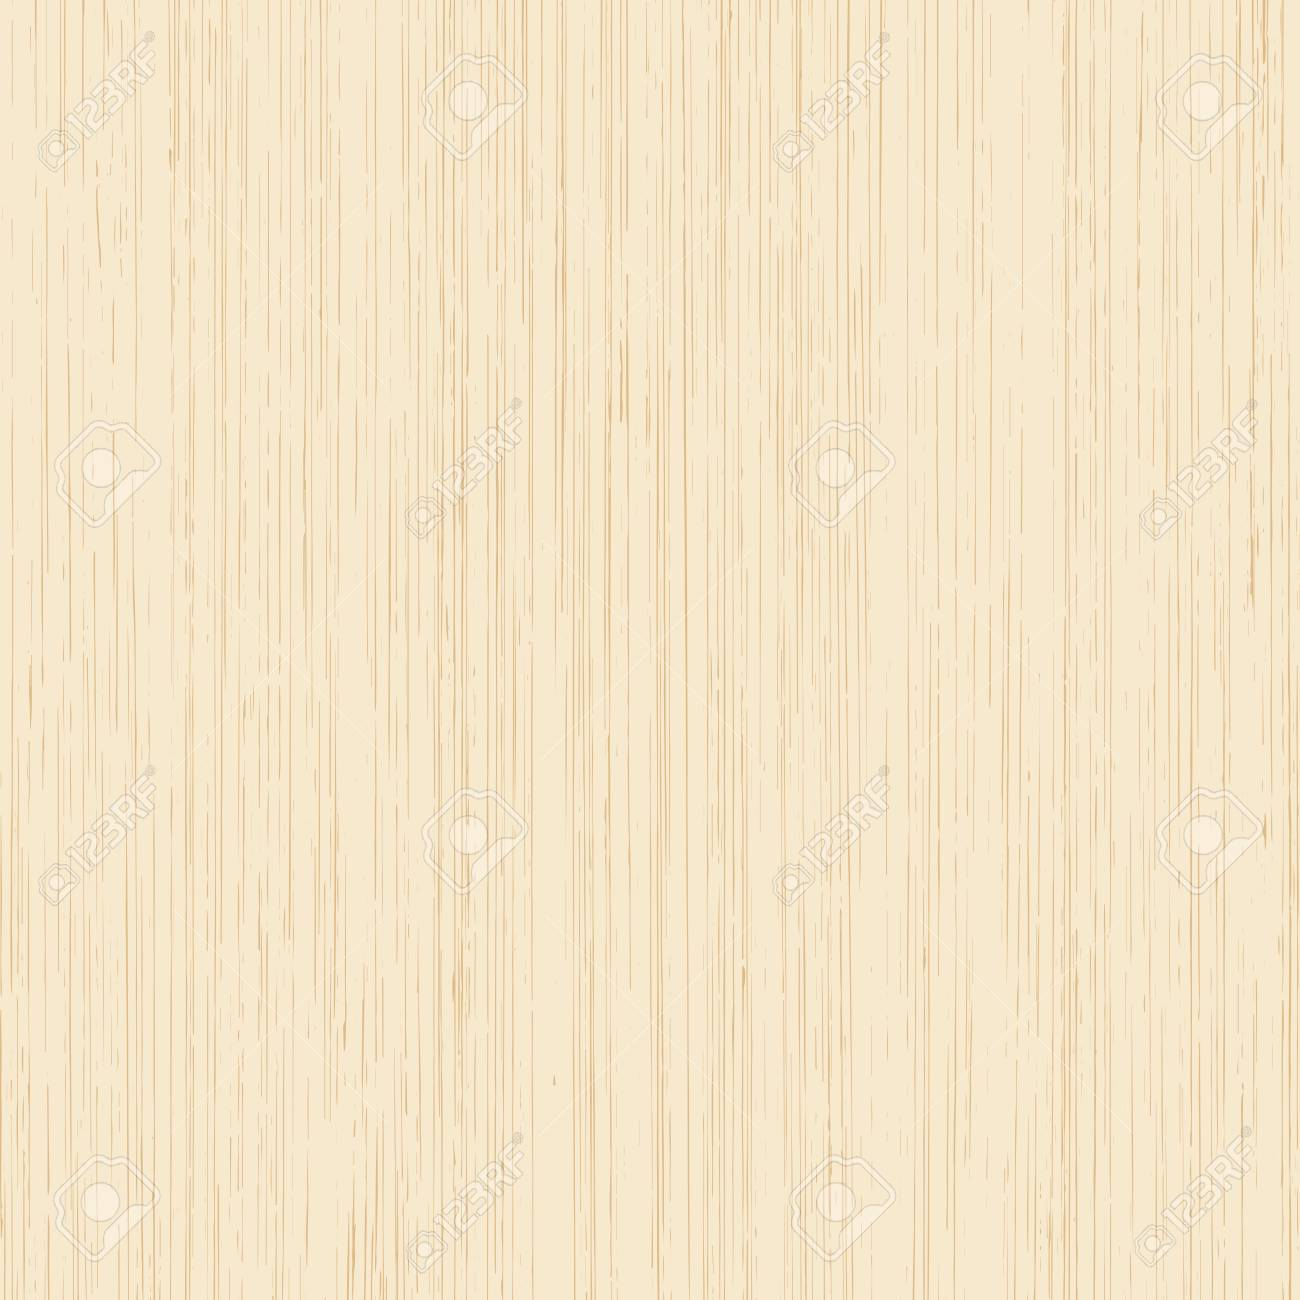 Brown wood texture background - 126290568